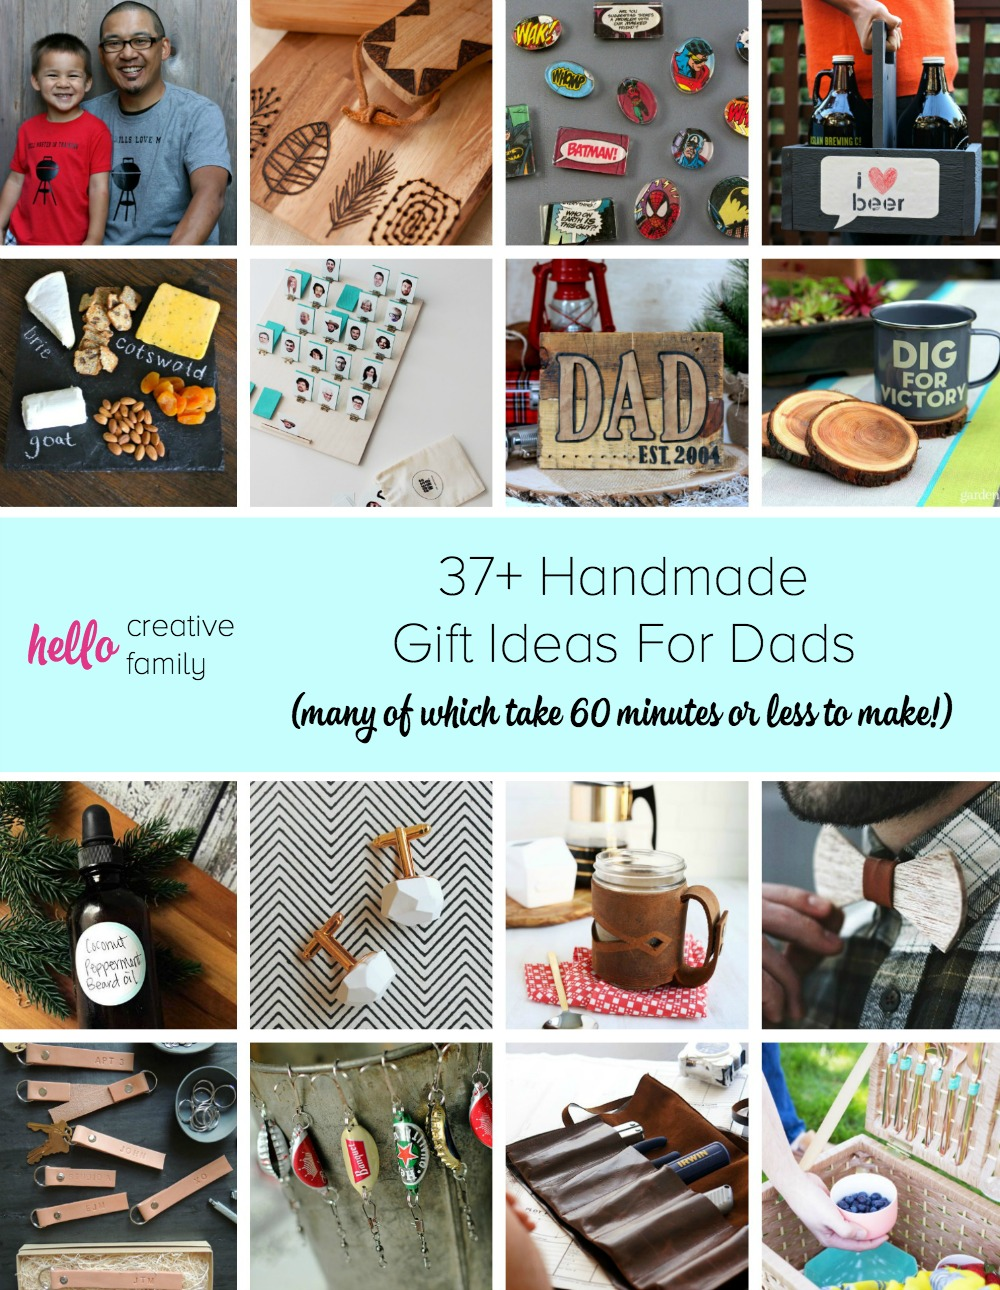 50 last minute handmade gifts you can diy in 60 minutes or less 37 handmade gift ideas for dads many of which take 60 minutes or less negle Choice Image